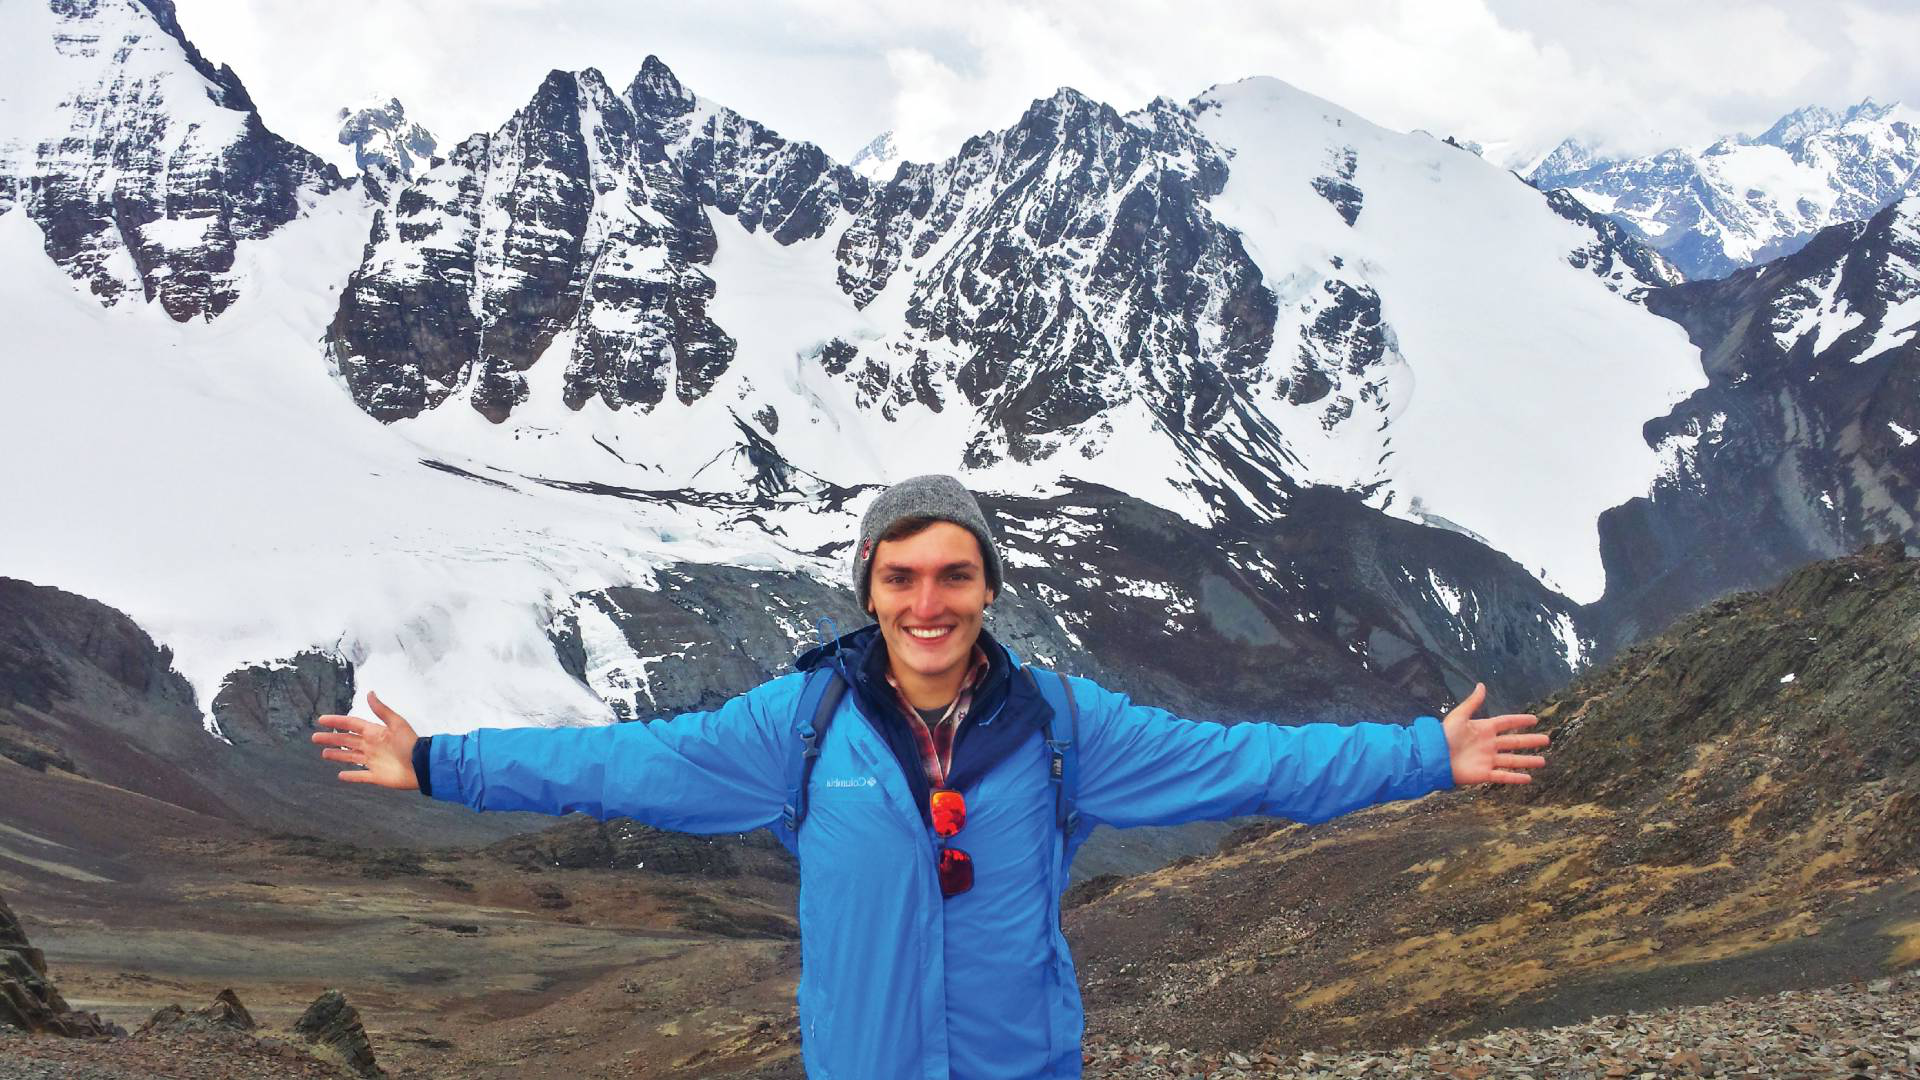 Bridge Year student stands in front of a snowy mountain range, arms spread wide